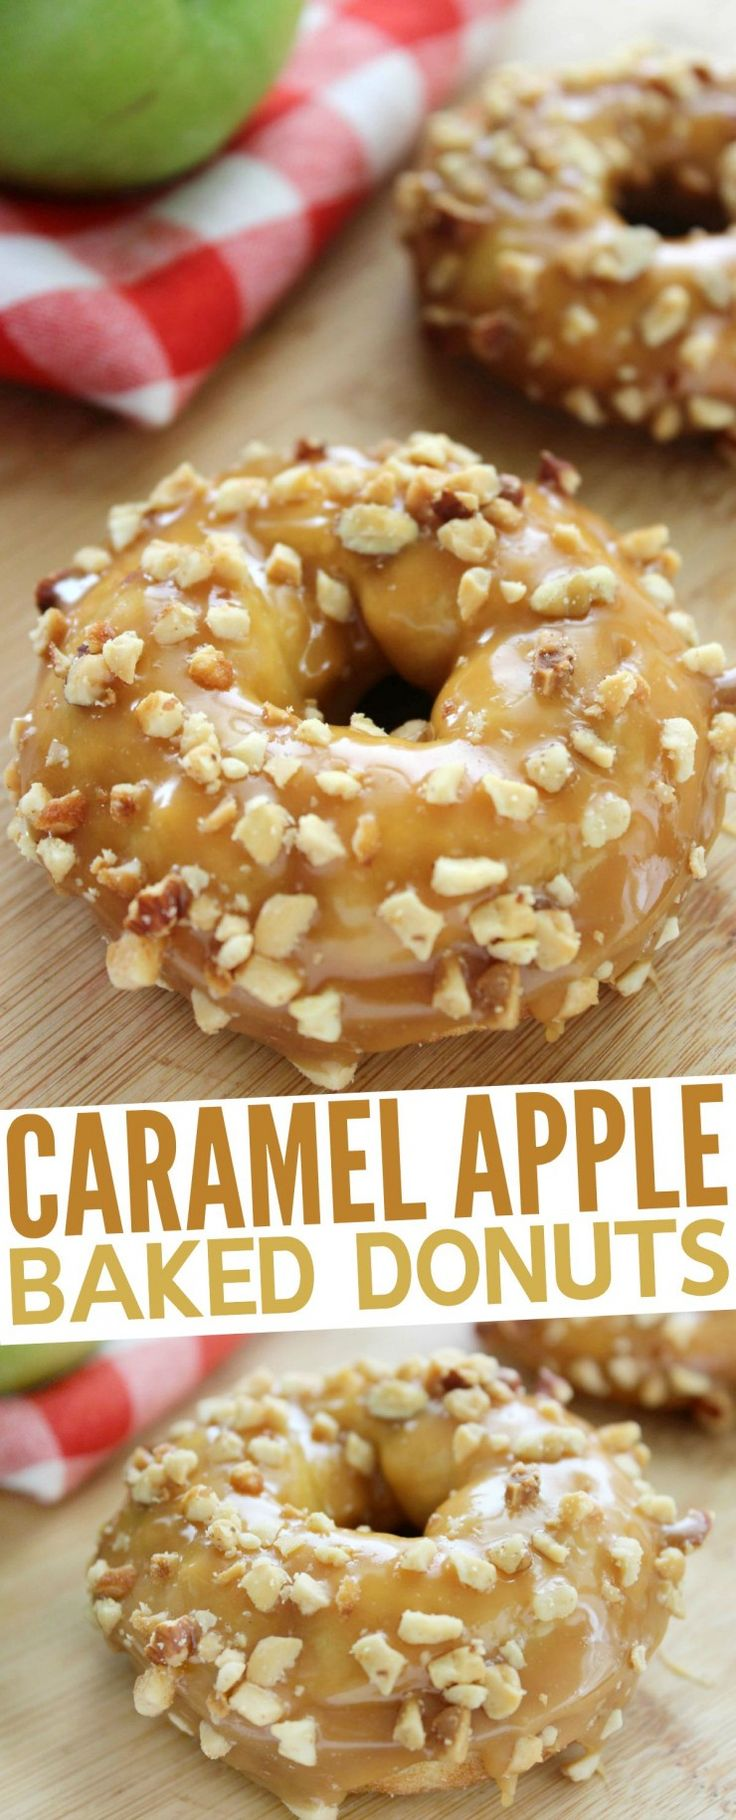 These Caramel Apple Baked Donuts are a perfect fall dessert with a fun spin on the classic caramel apple!